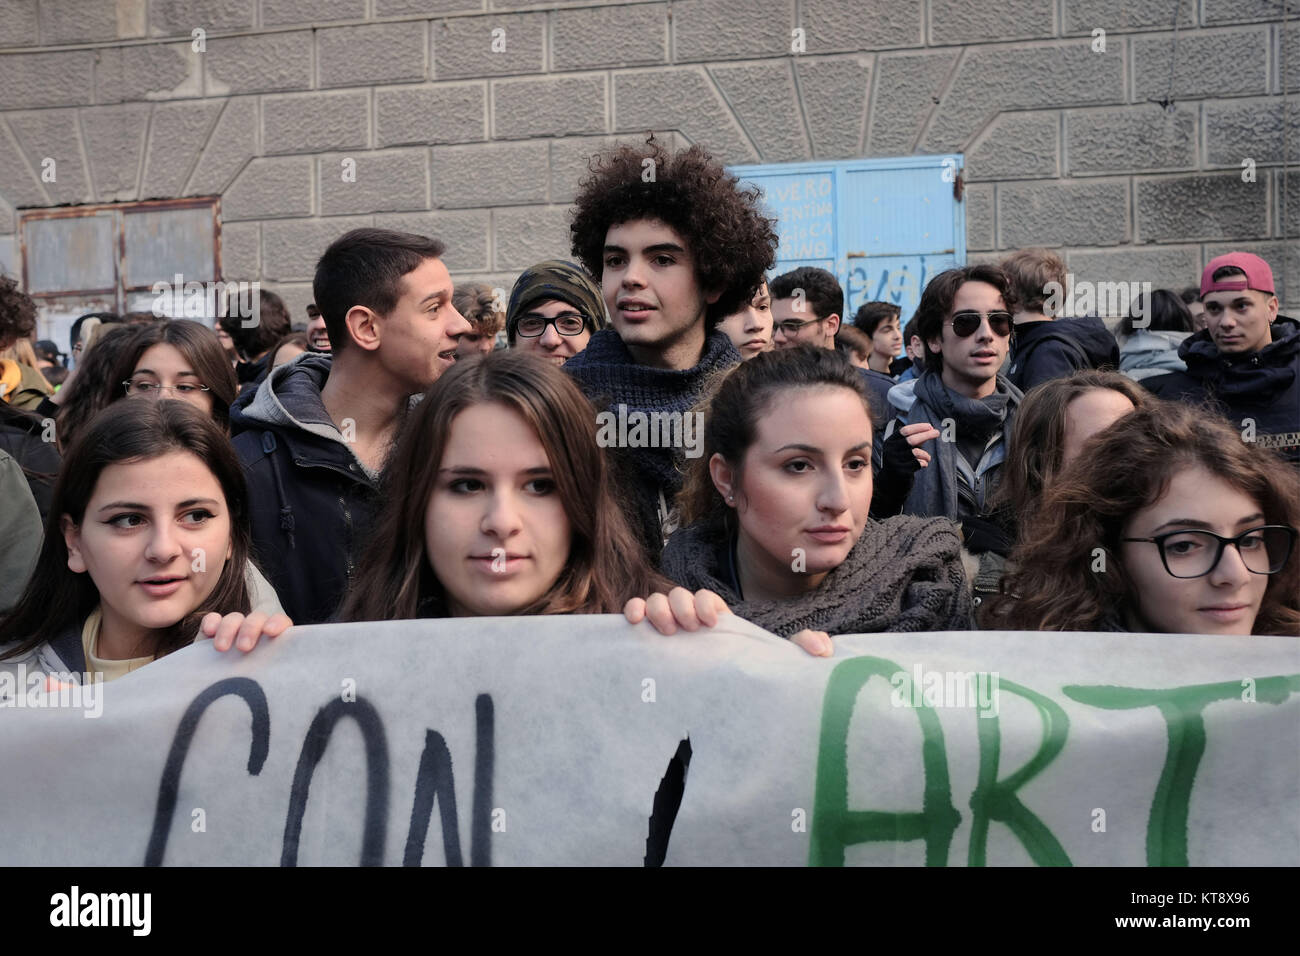 Naples, Italy, Italy. 22nd Dec, 2017. Thousands of students marched from Miracle's square to protest against - Stock Image